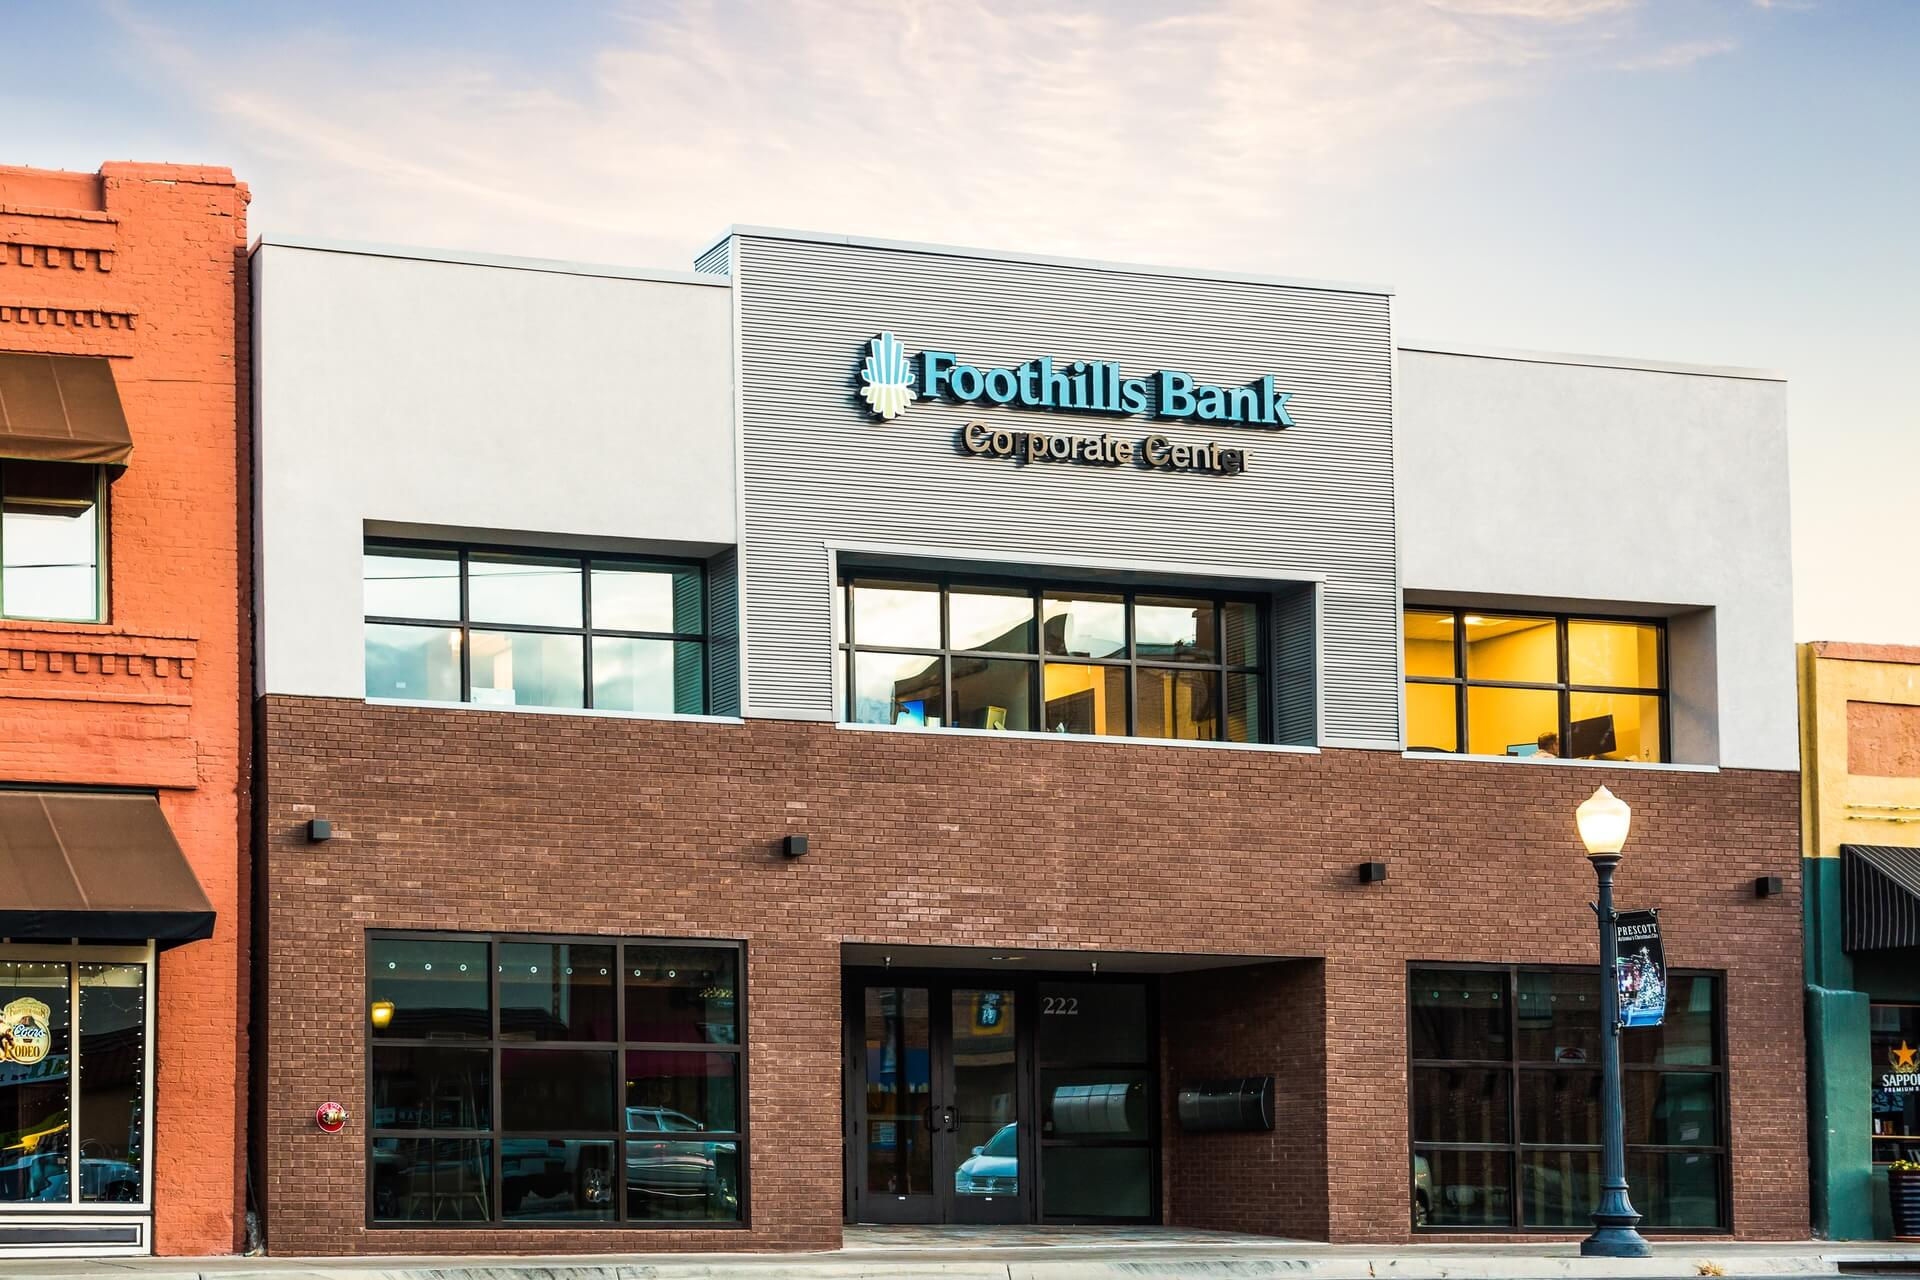 Foothills Bank Corporate